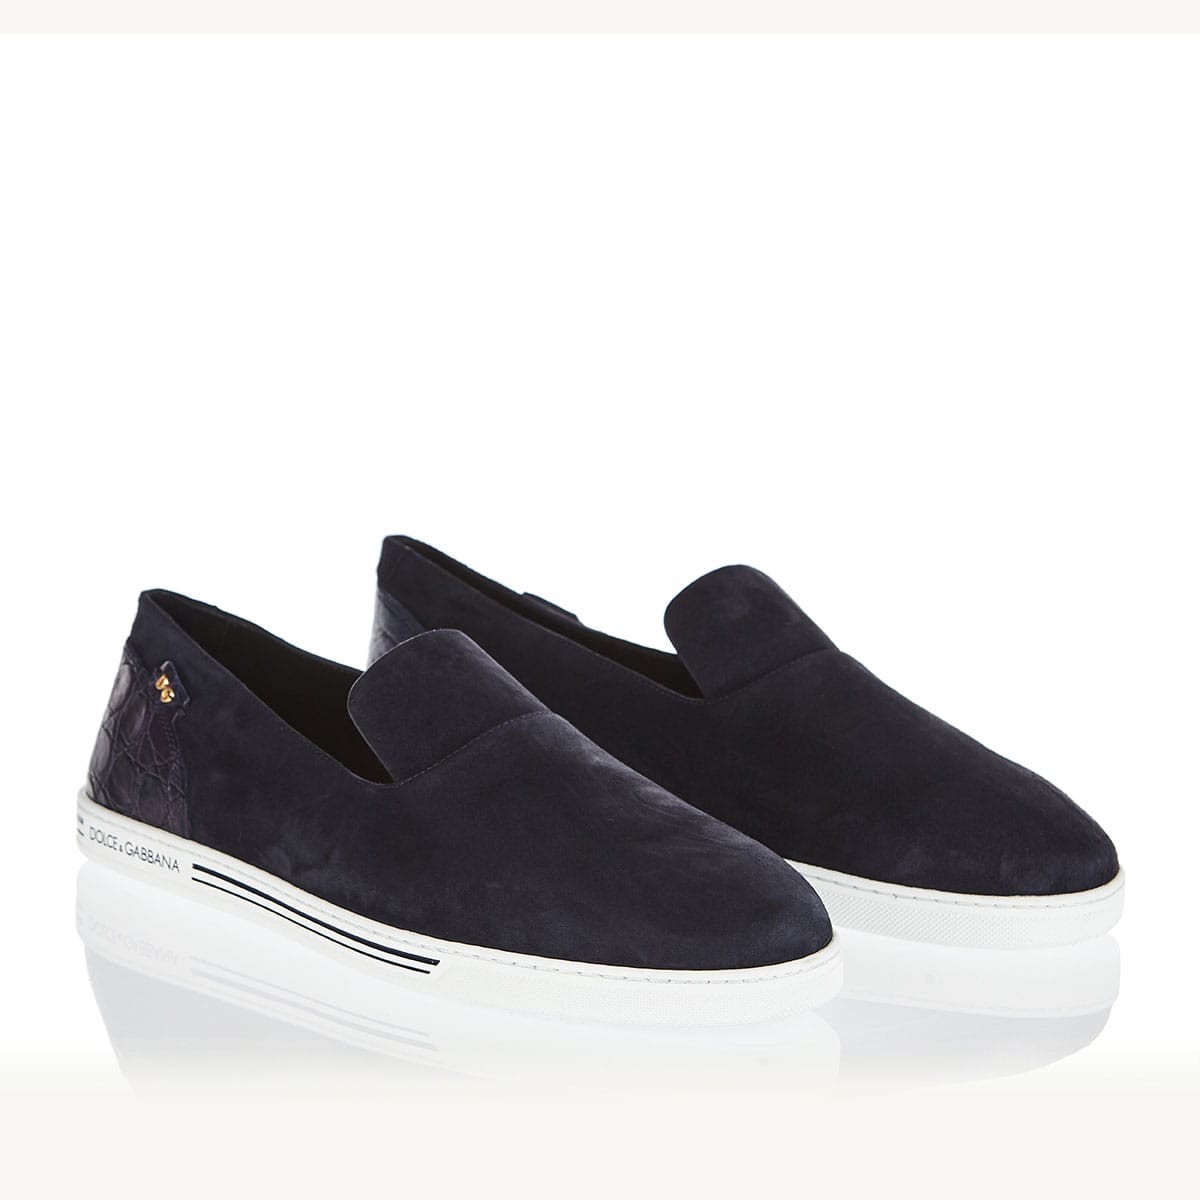 Suede slippers with croc-effect detail